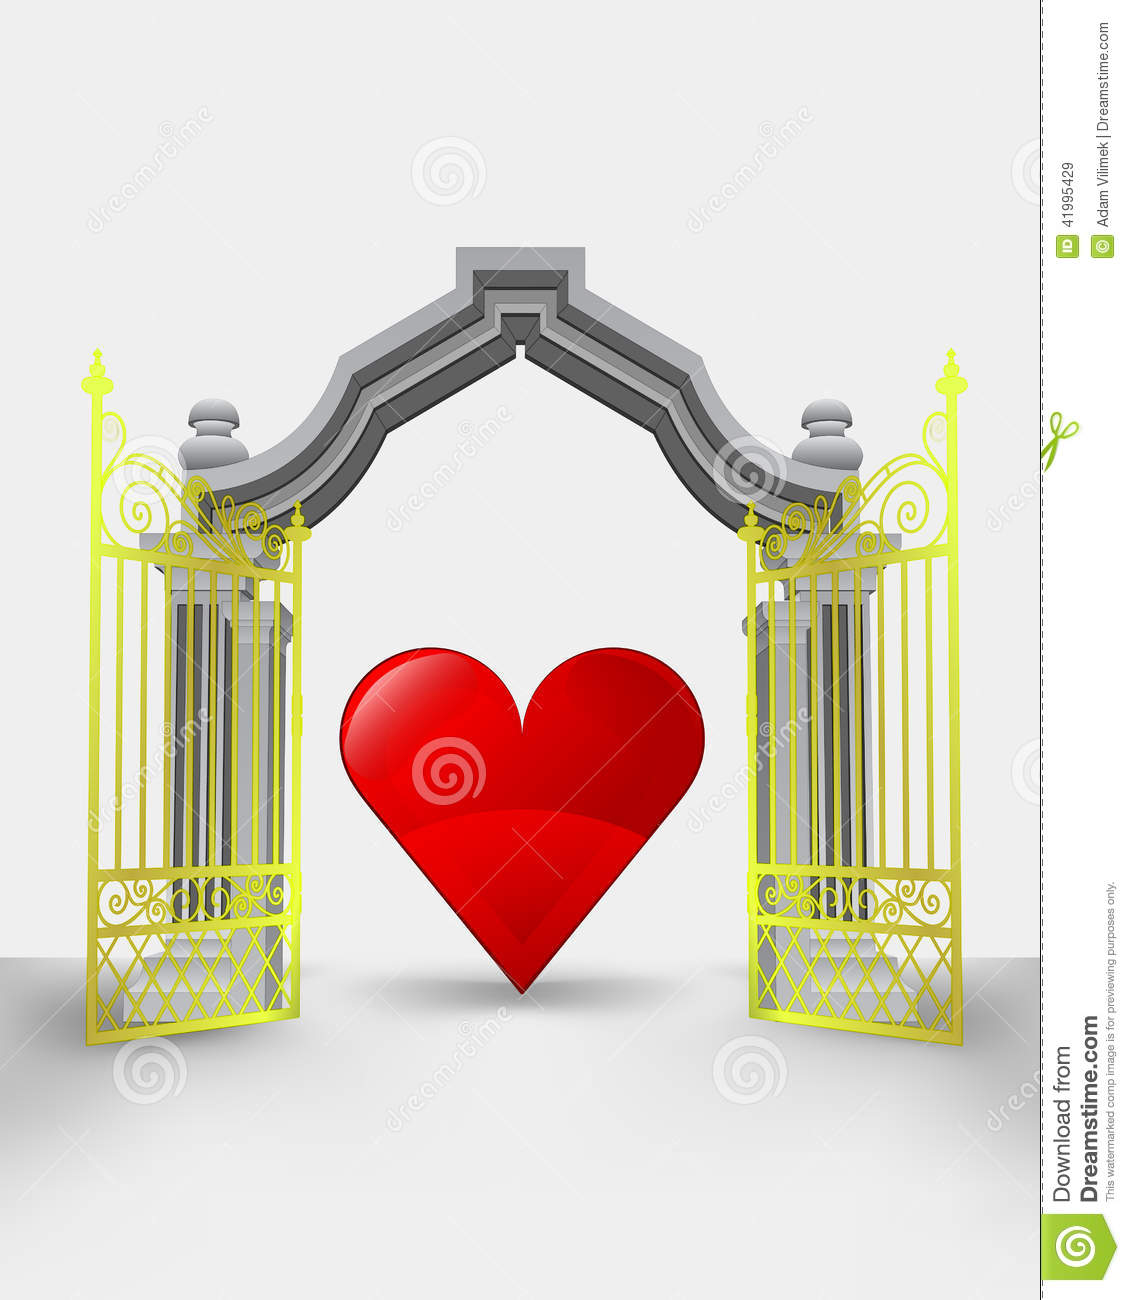 Golden gate entrance with red heart